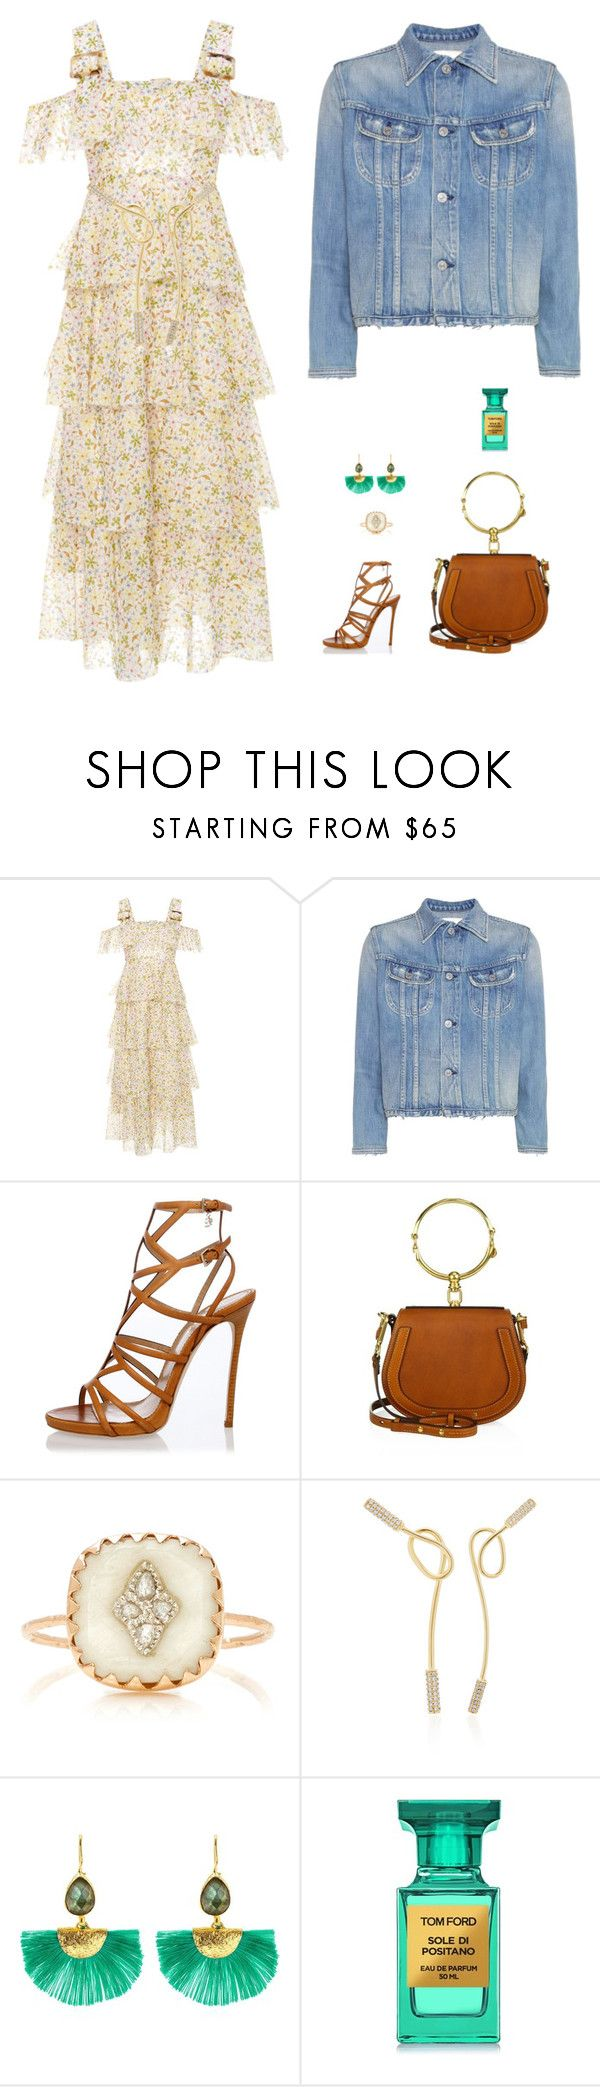 """""""fashion blogger"""" by candynena228 ❤ liked on Polyvore featuring AlexaChung, Citizens of Humanity, Dsquared2, Chloé, Pascale Monvoisin, Joanna Laura Constantine, Ottoman Hands and Tom Ford"""